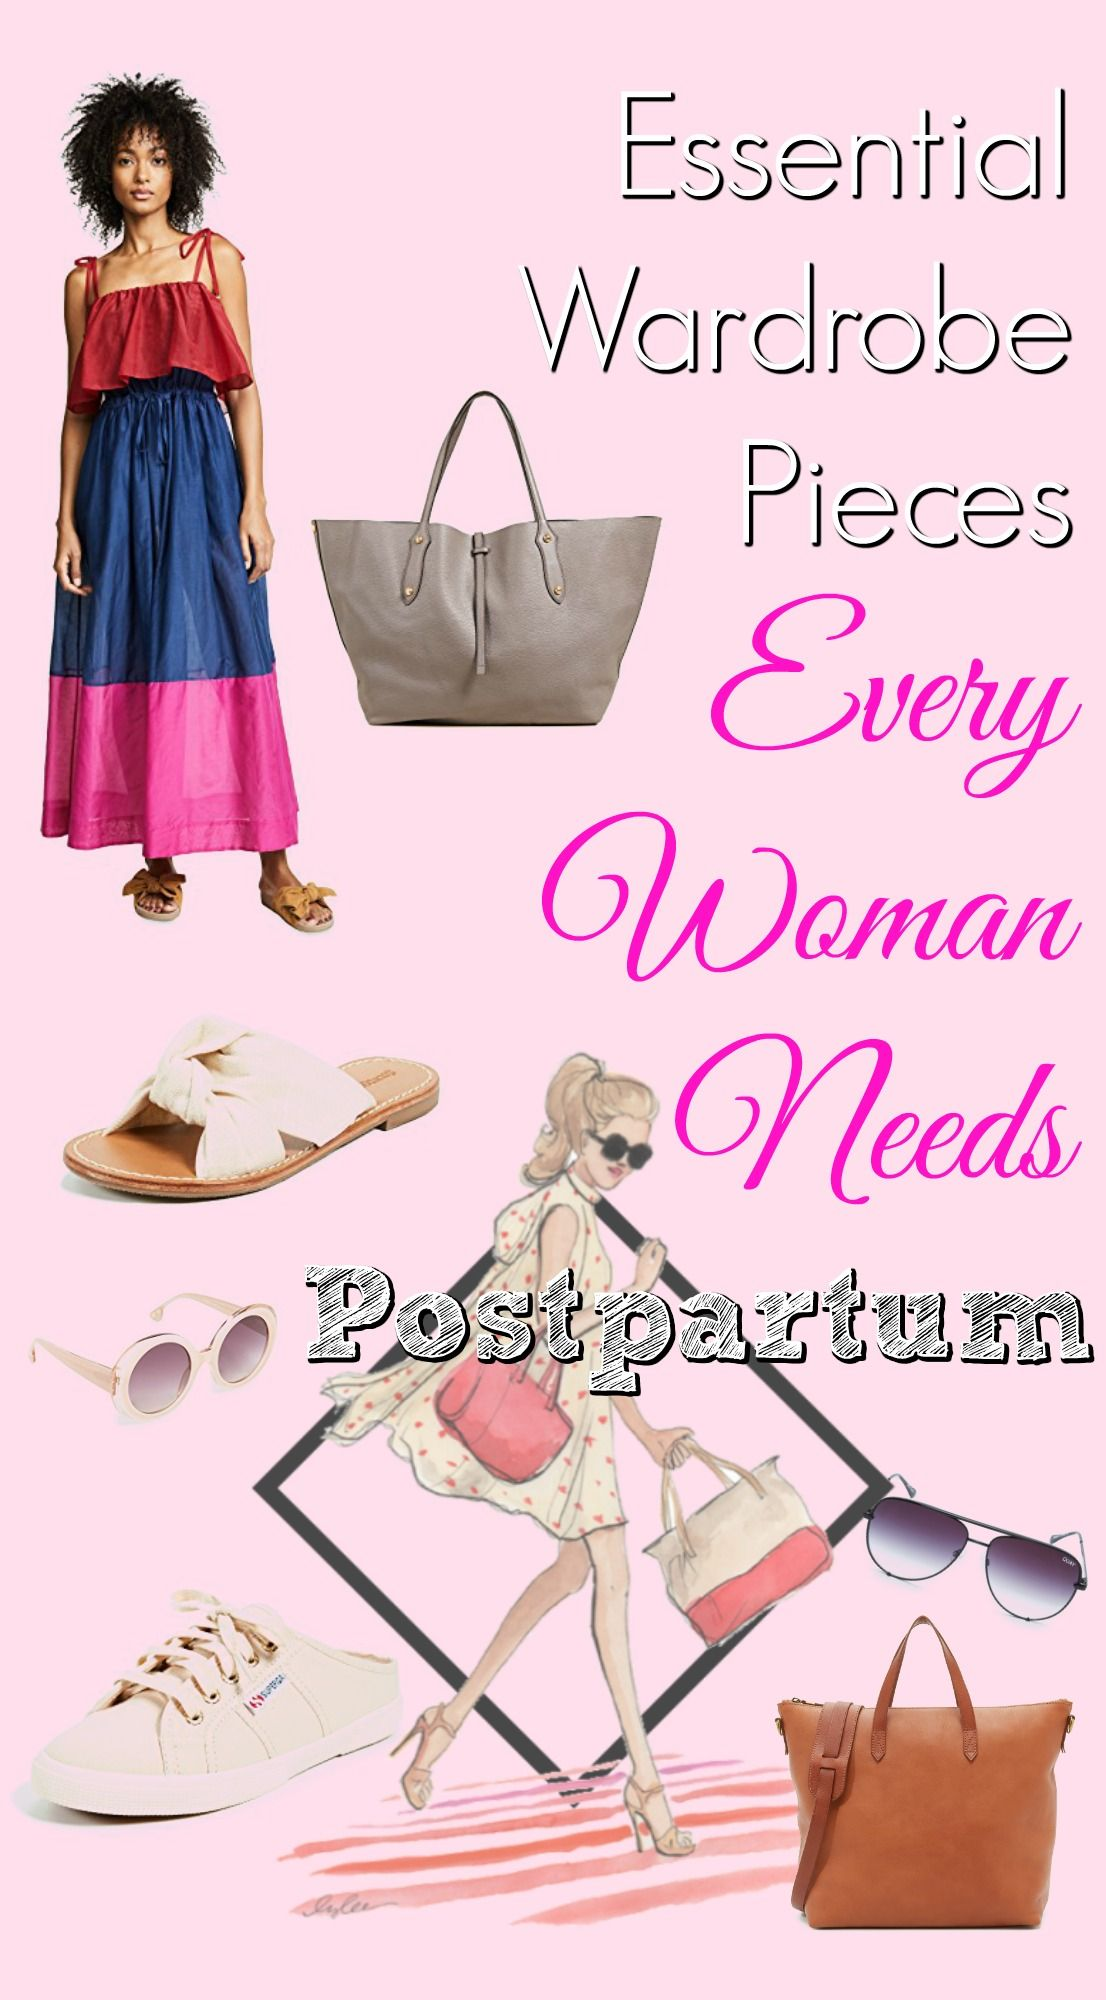 Essential Wardrobe Pieces Every Woman Needs Postpartum